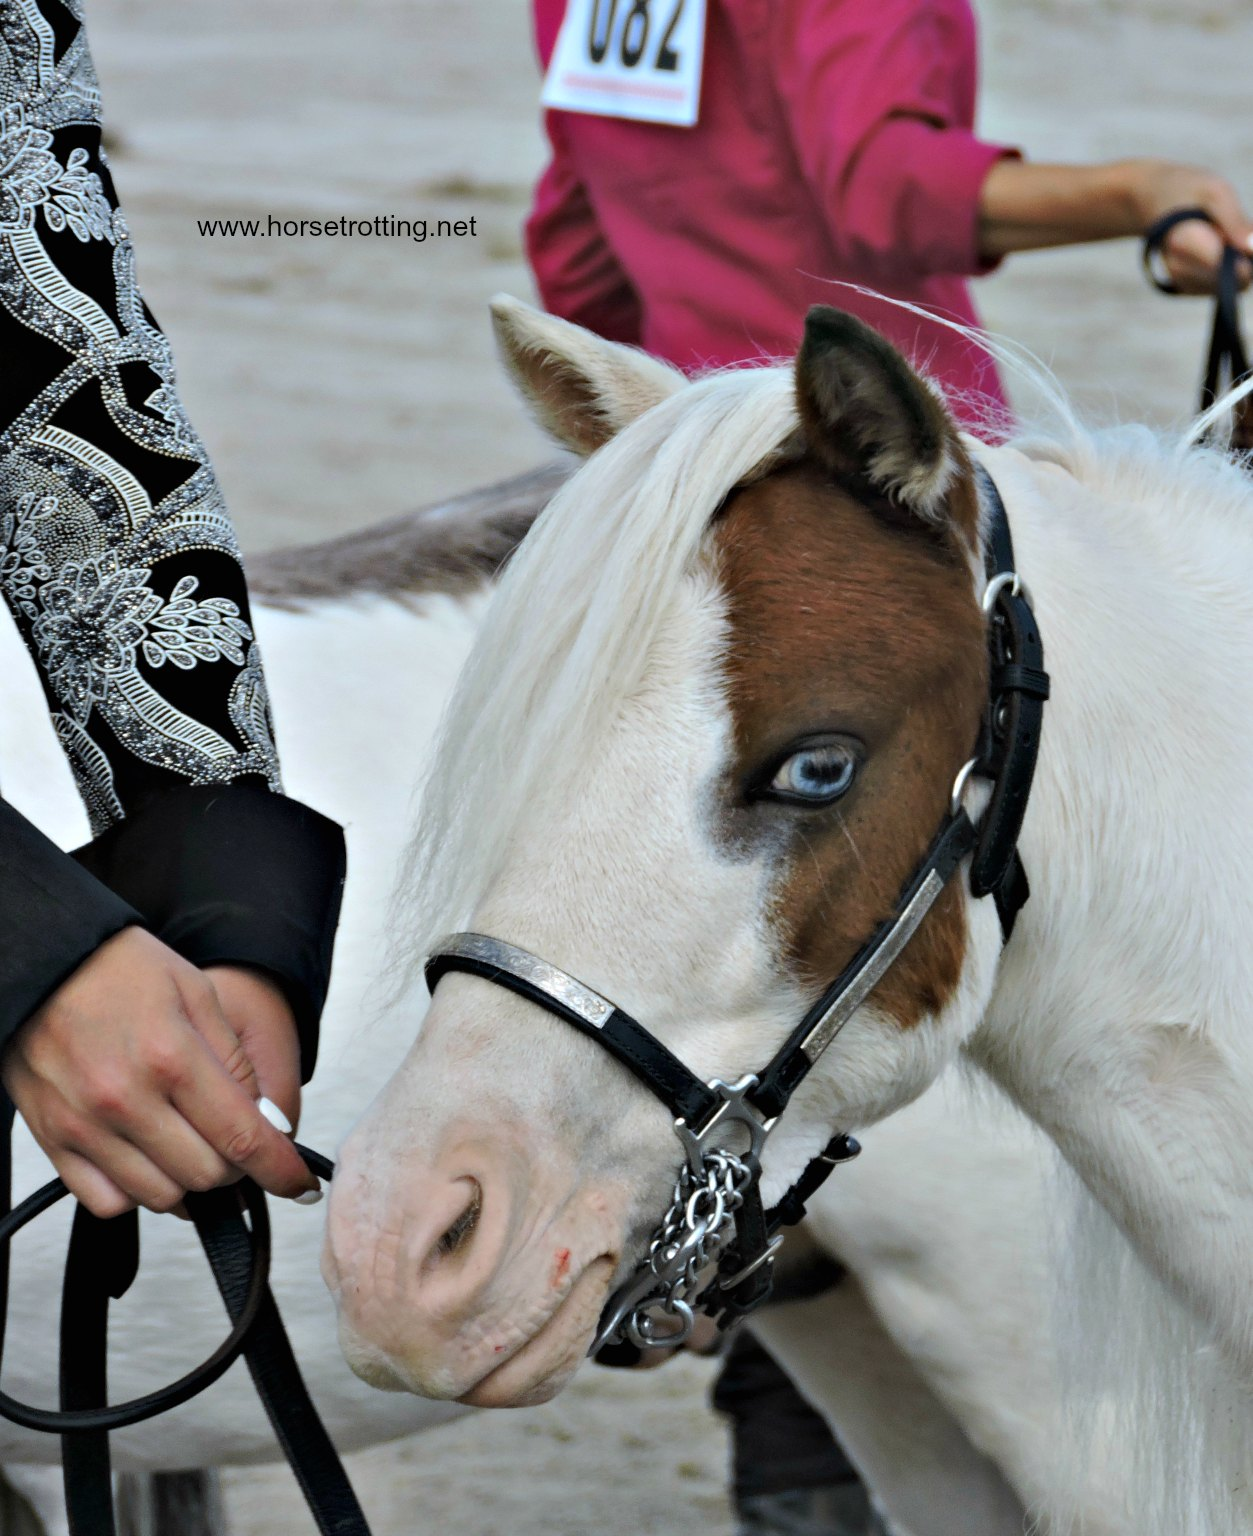 Mini Horses and Country Fall Fairs. What's not to love?